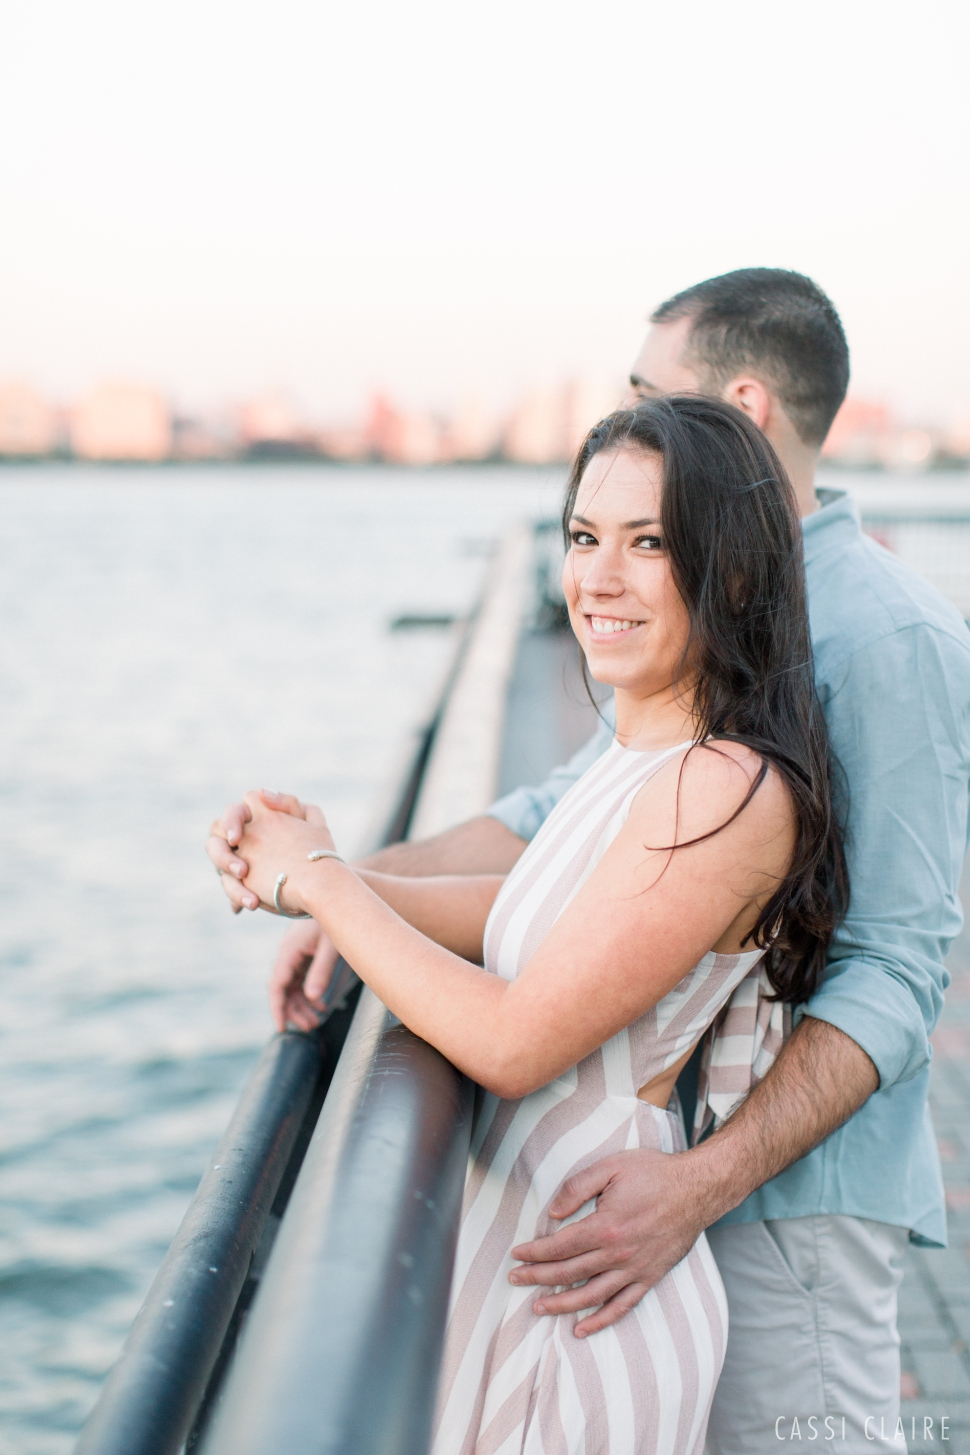 Hoboken-Engagement-Photos_CassiClaire_16.jpg